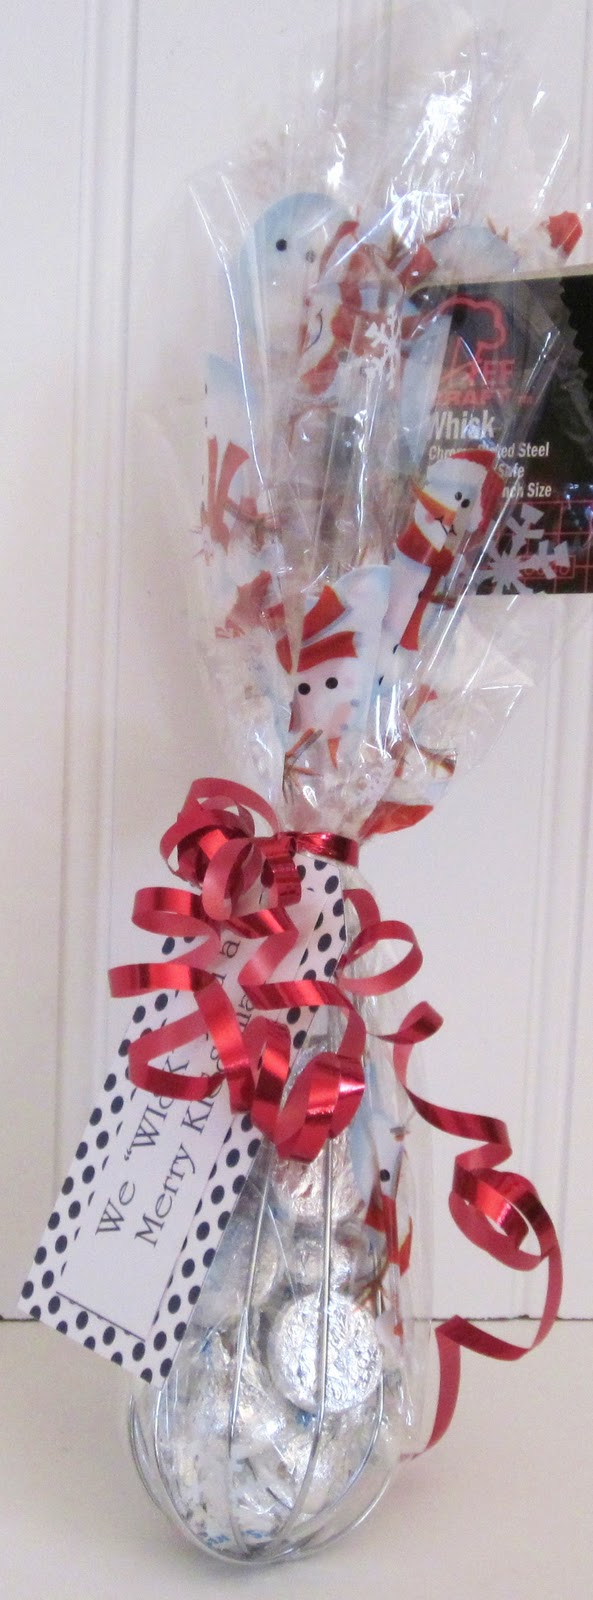 DIY Whisk wrapper for Xmas